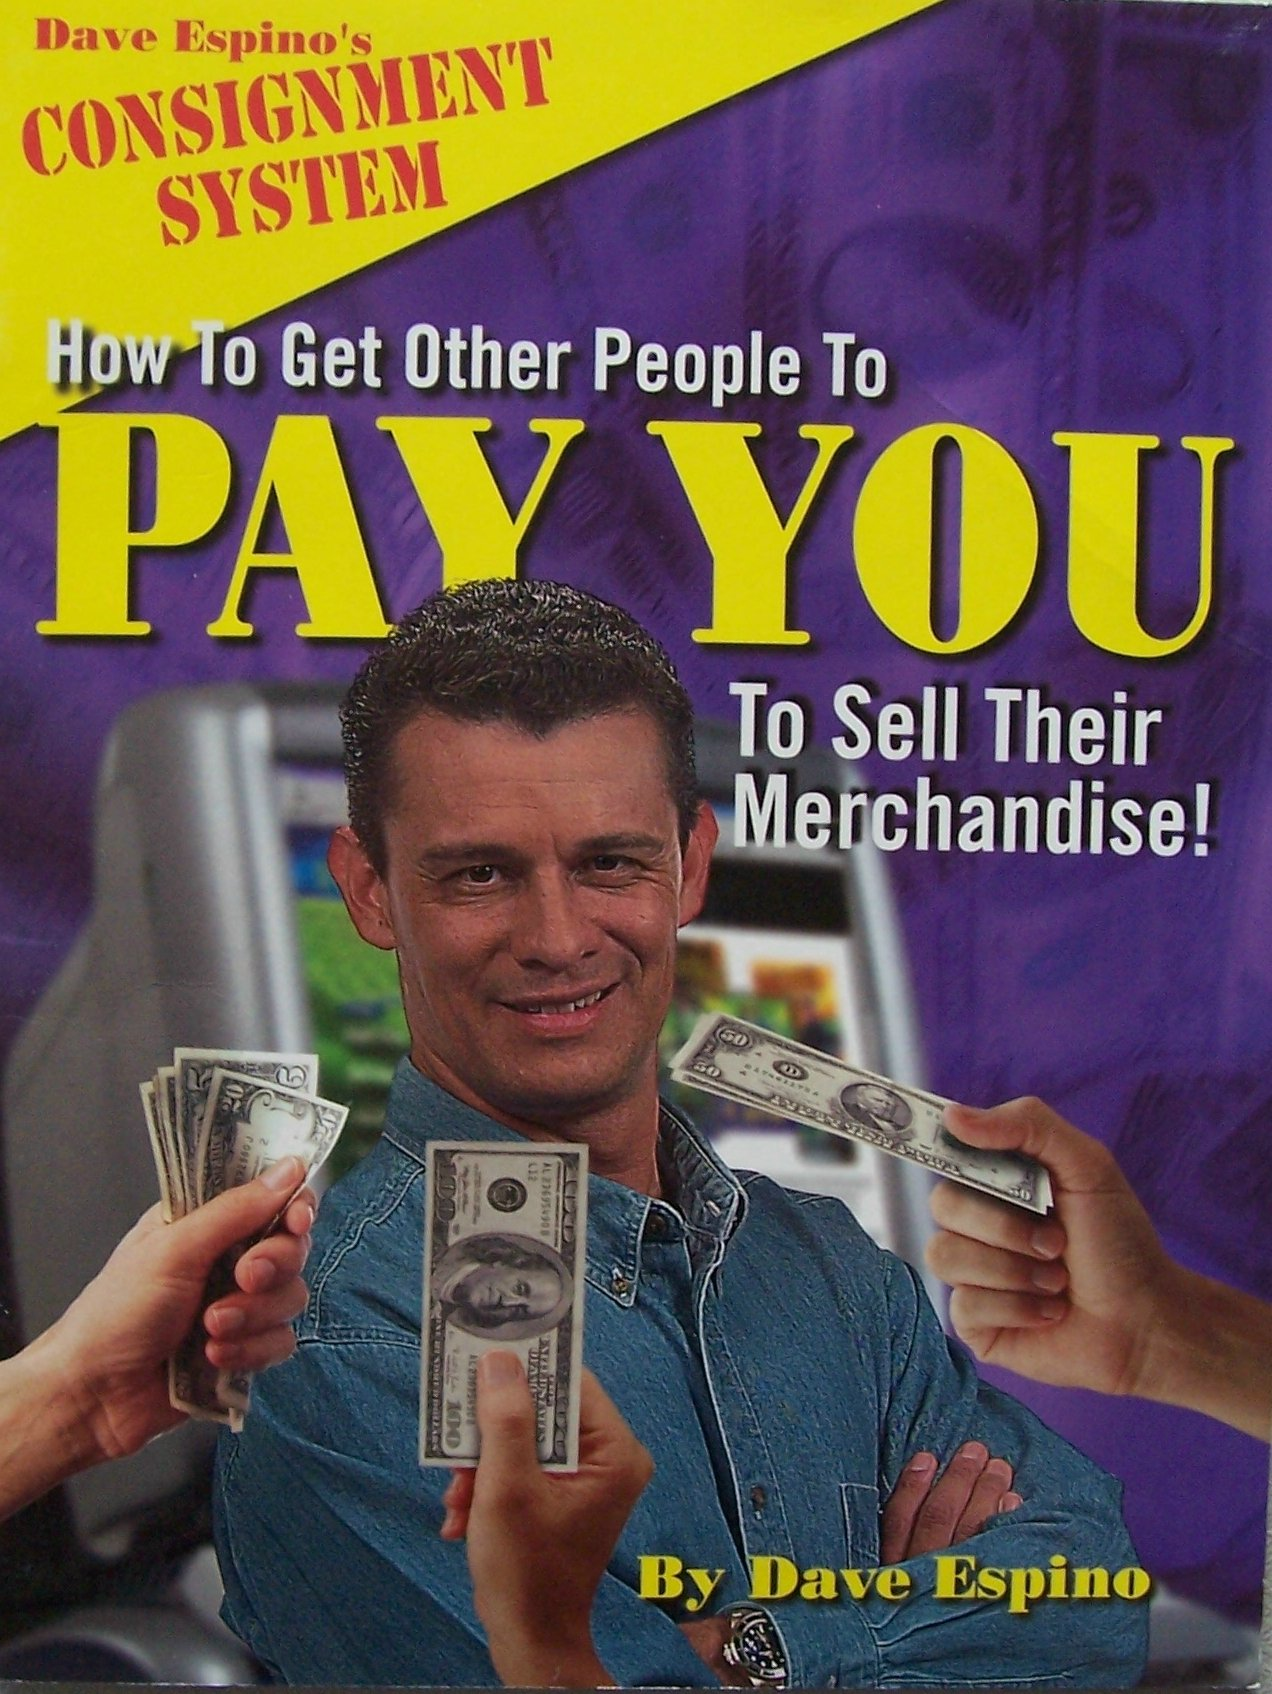 Download How to Get Other People to PAY YOU To Sell Their Merchandise! (Dave Espino's Consignment System) ebook